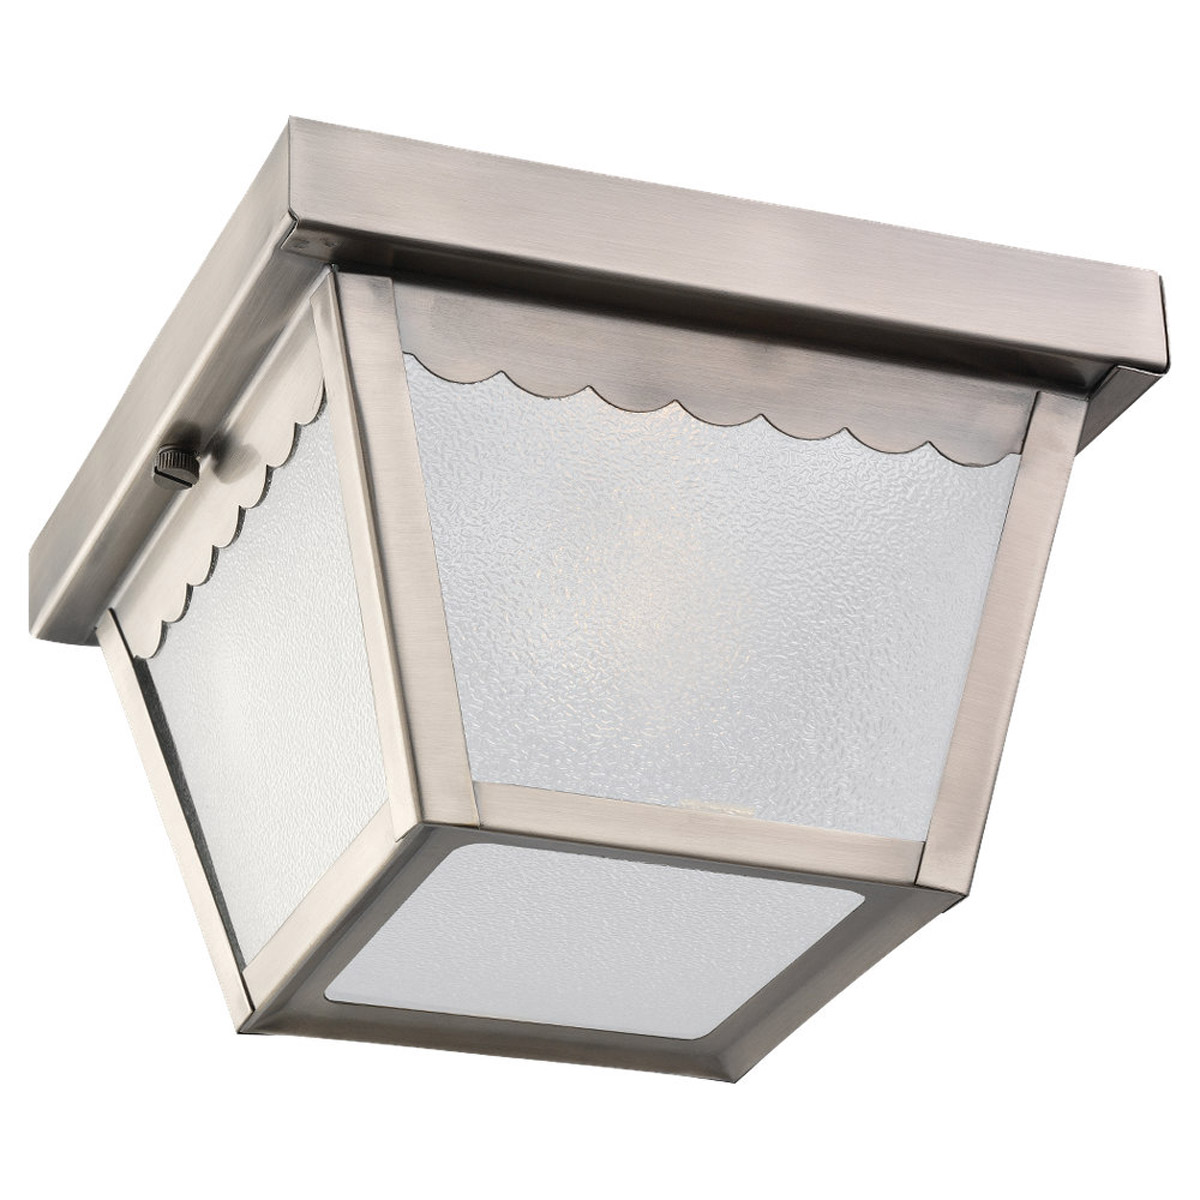 Sea Gull Lighting Signature 1 Light Outdoor Ceiling Fixture in Antique Brushed Nickel 75467-965 photo